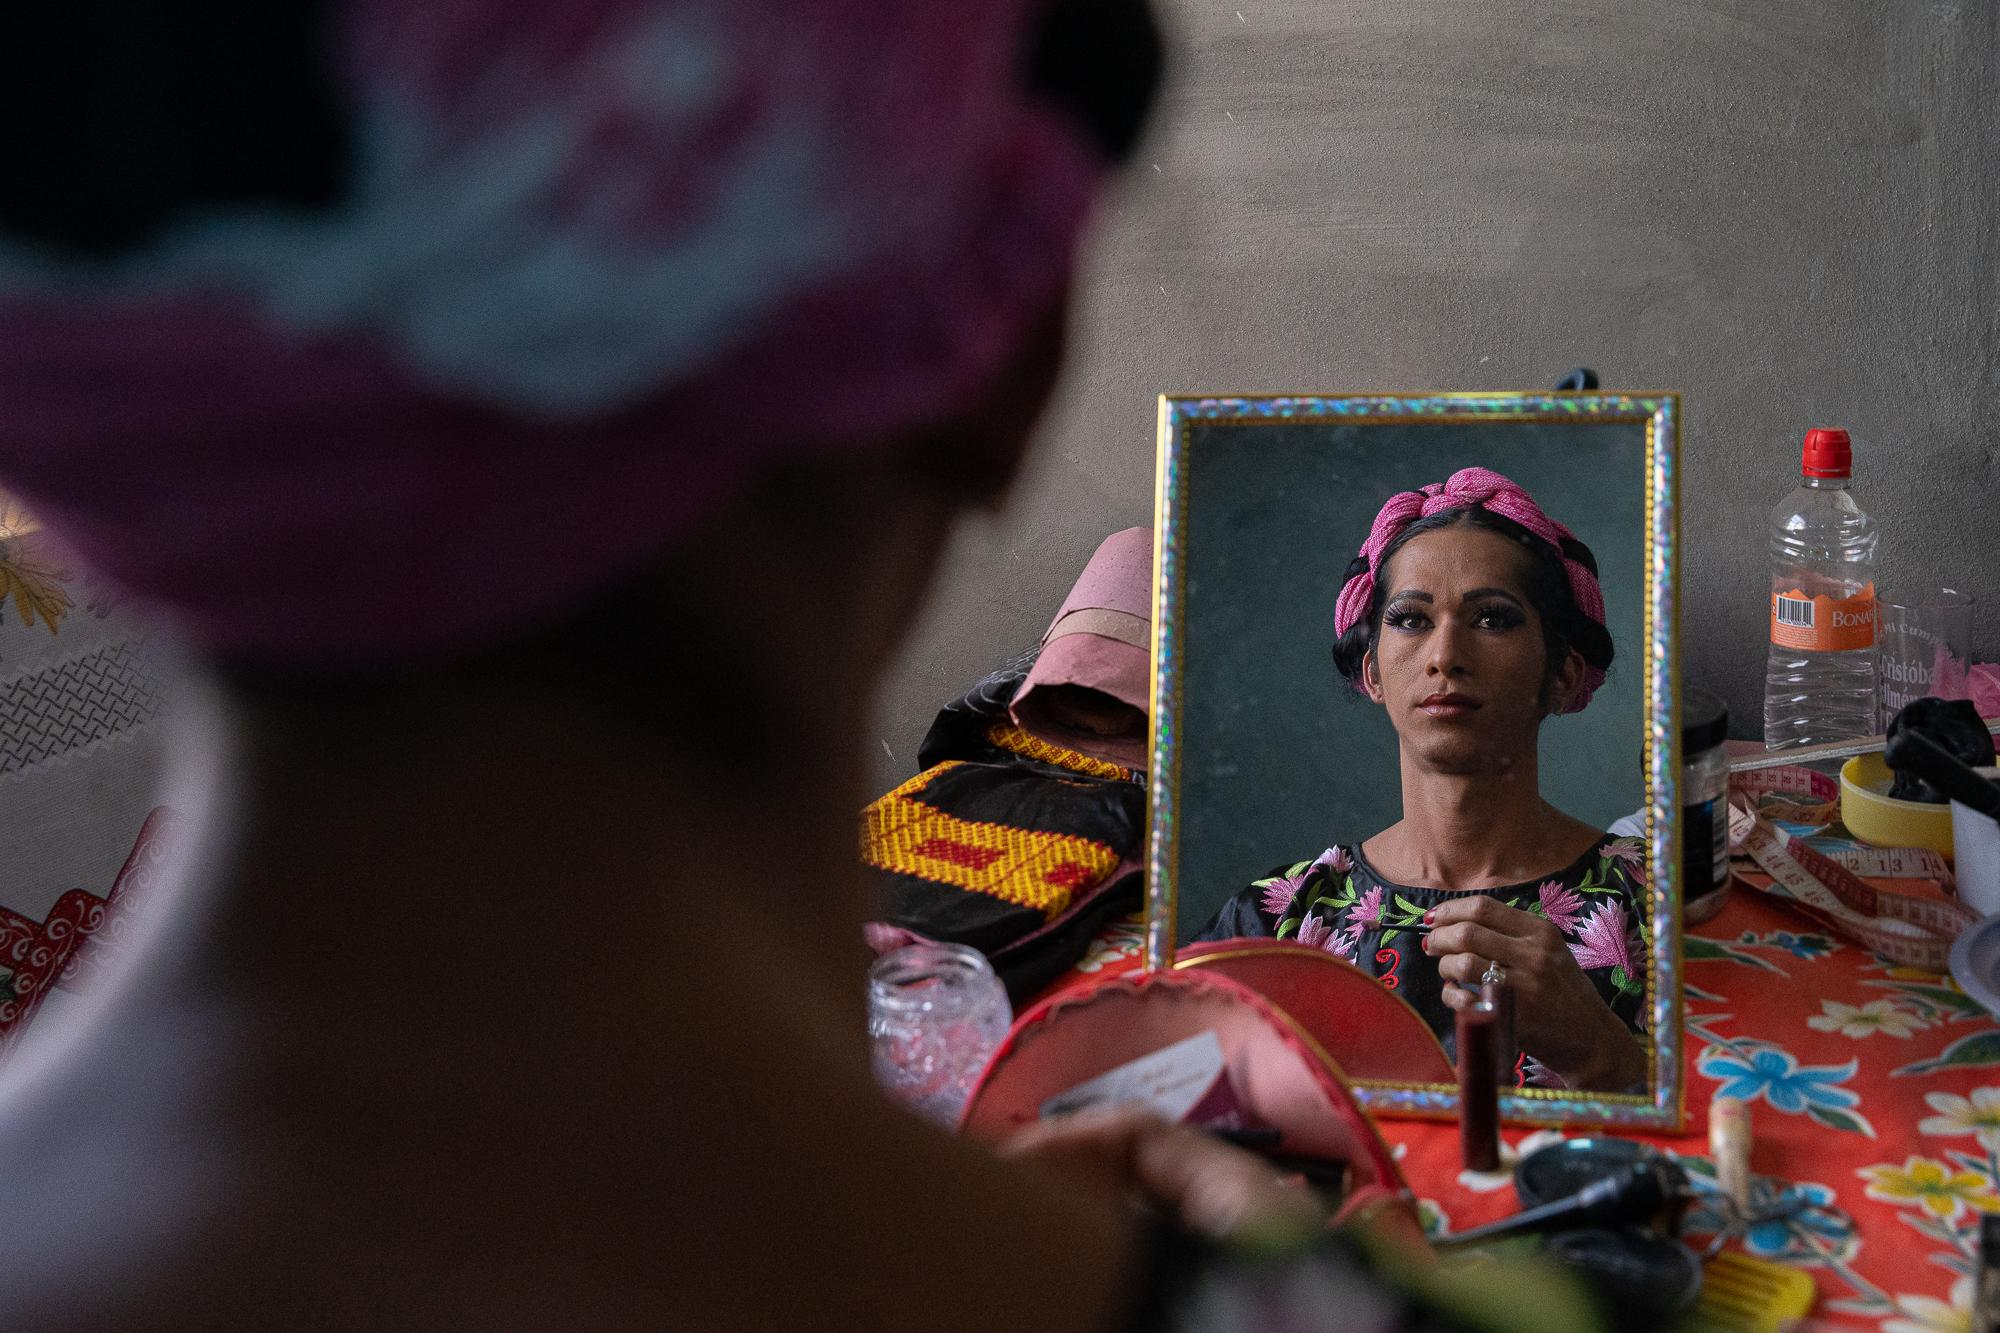 Estrella looks in the mirror after she applies make-up in her home.